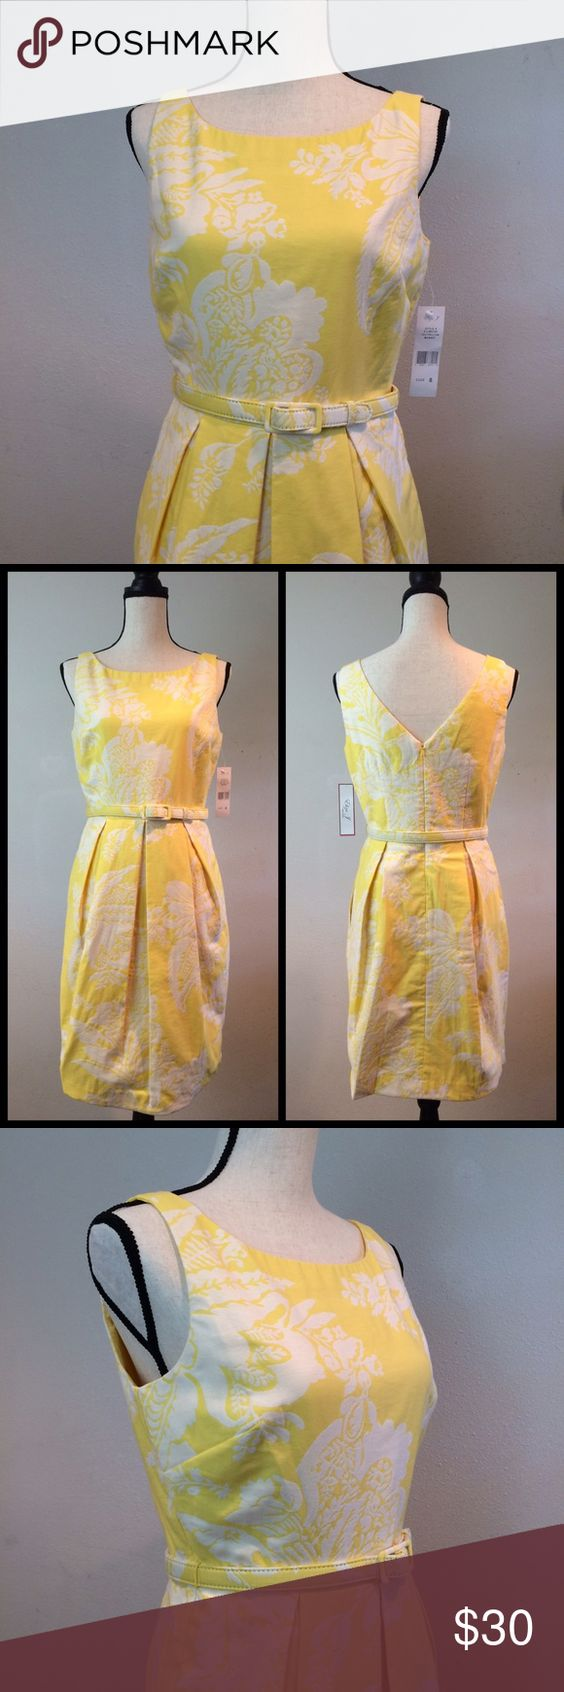 "🌷Eliza J Spring Dress🌷 This yellow and white floral dress by Eliza J is new with tags. It has bubble style hem, box pleats, a coordinating belt, and pockets! The dress is fully lined. The skirt measures 23"" from the waist to bottom hem in the front and 20"" from the waist to the bottom hem in back. Dress is 86% cotton, 14% nylon. Lining is 100% acetate. Dry clean only. Eliza J Dresses Midi"